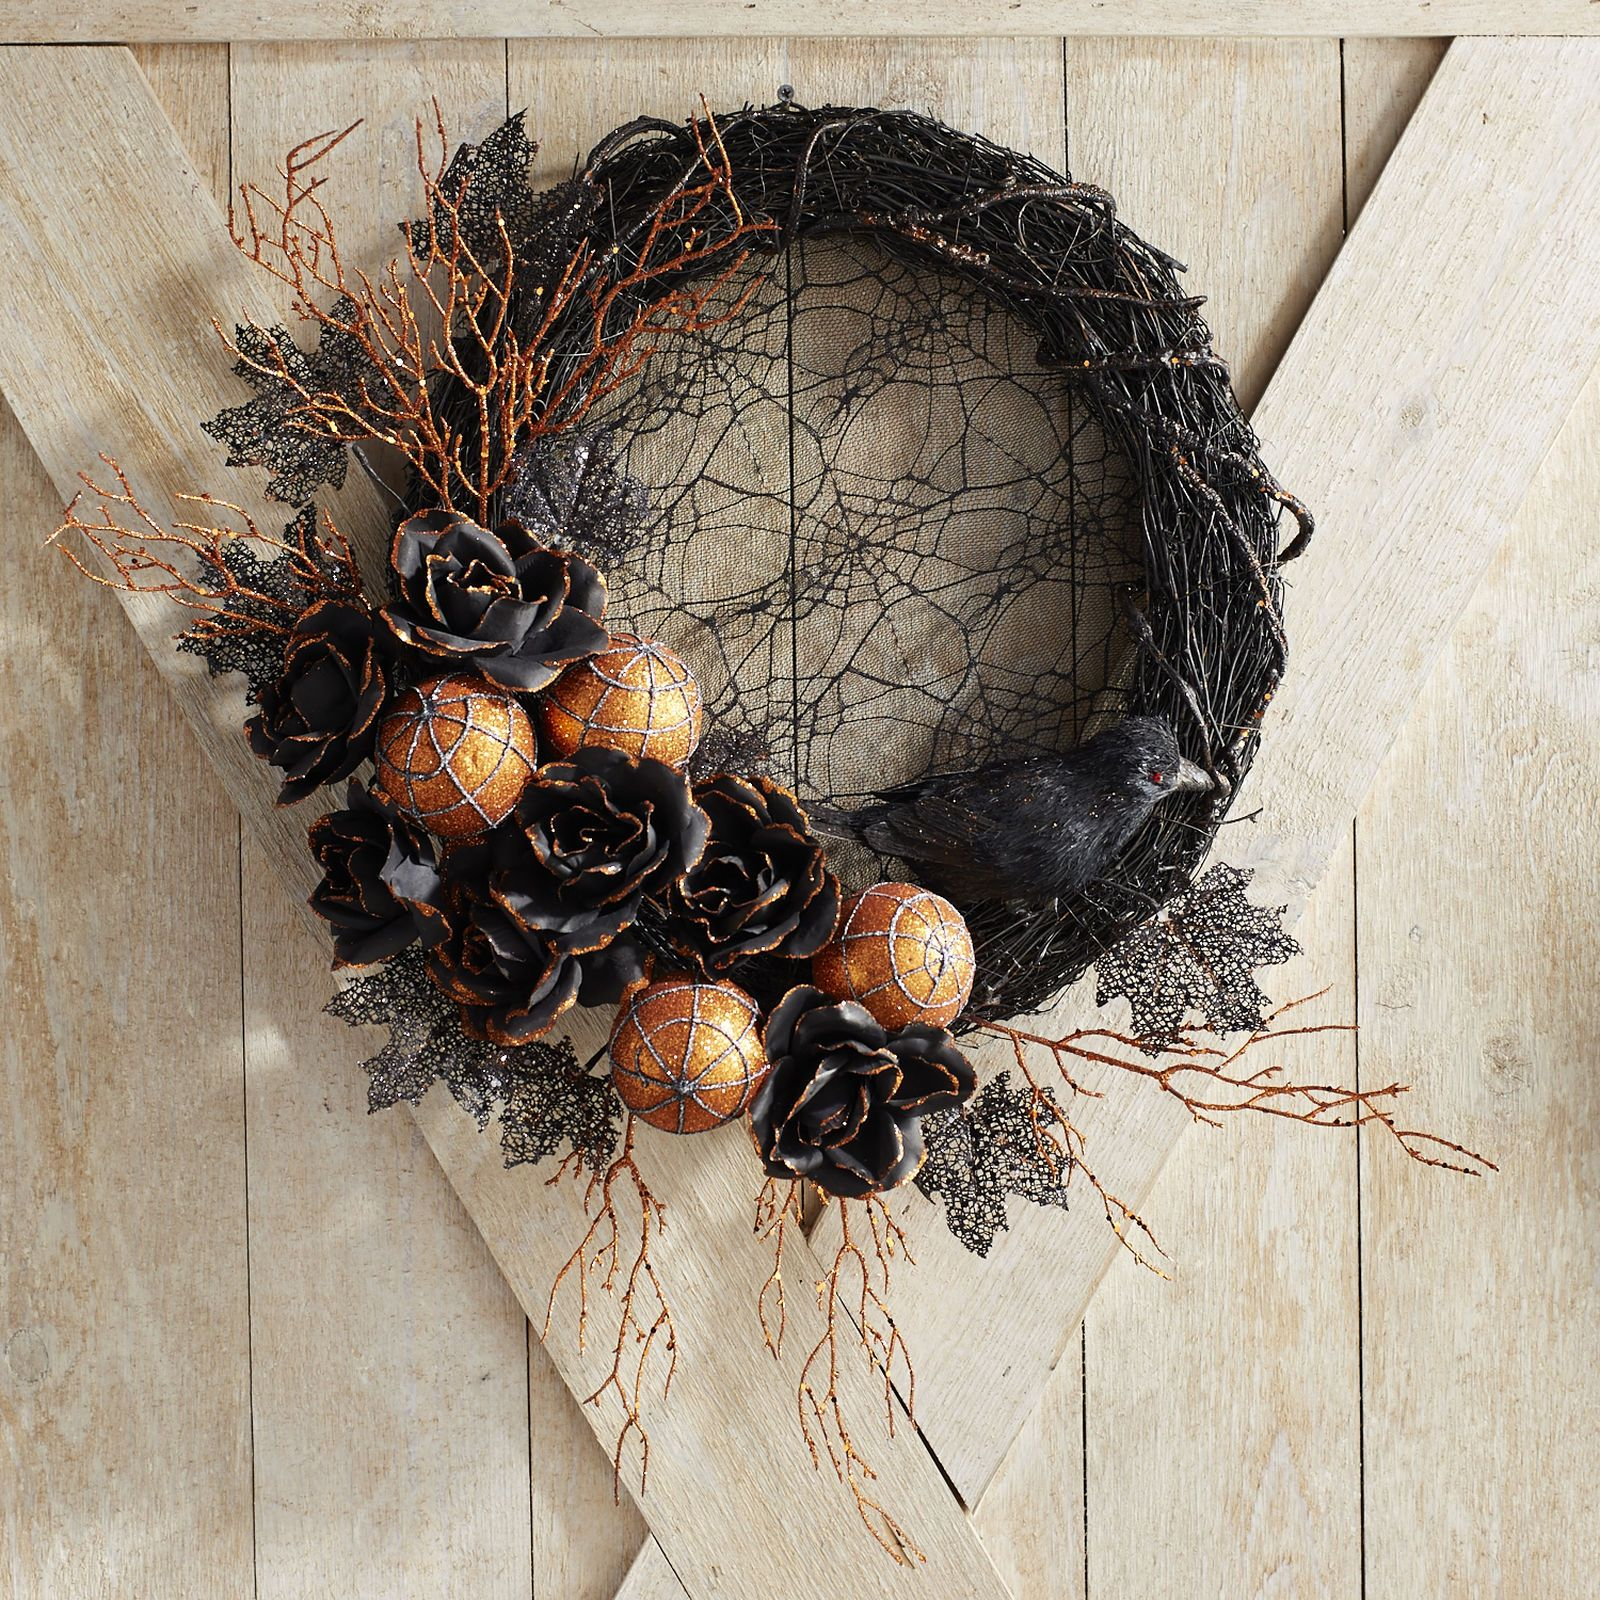 Gothic and glam are a match made in Halloween heaven. Take our black lace wreath. Its spooky yet stylish combination of cobwebs, faux florals and glittered leaves offers instant enchantment to a door or mantel. At the same time, a few bright orange accents provide a punch of seasonal color.